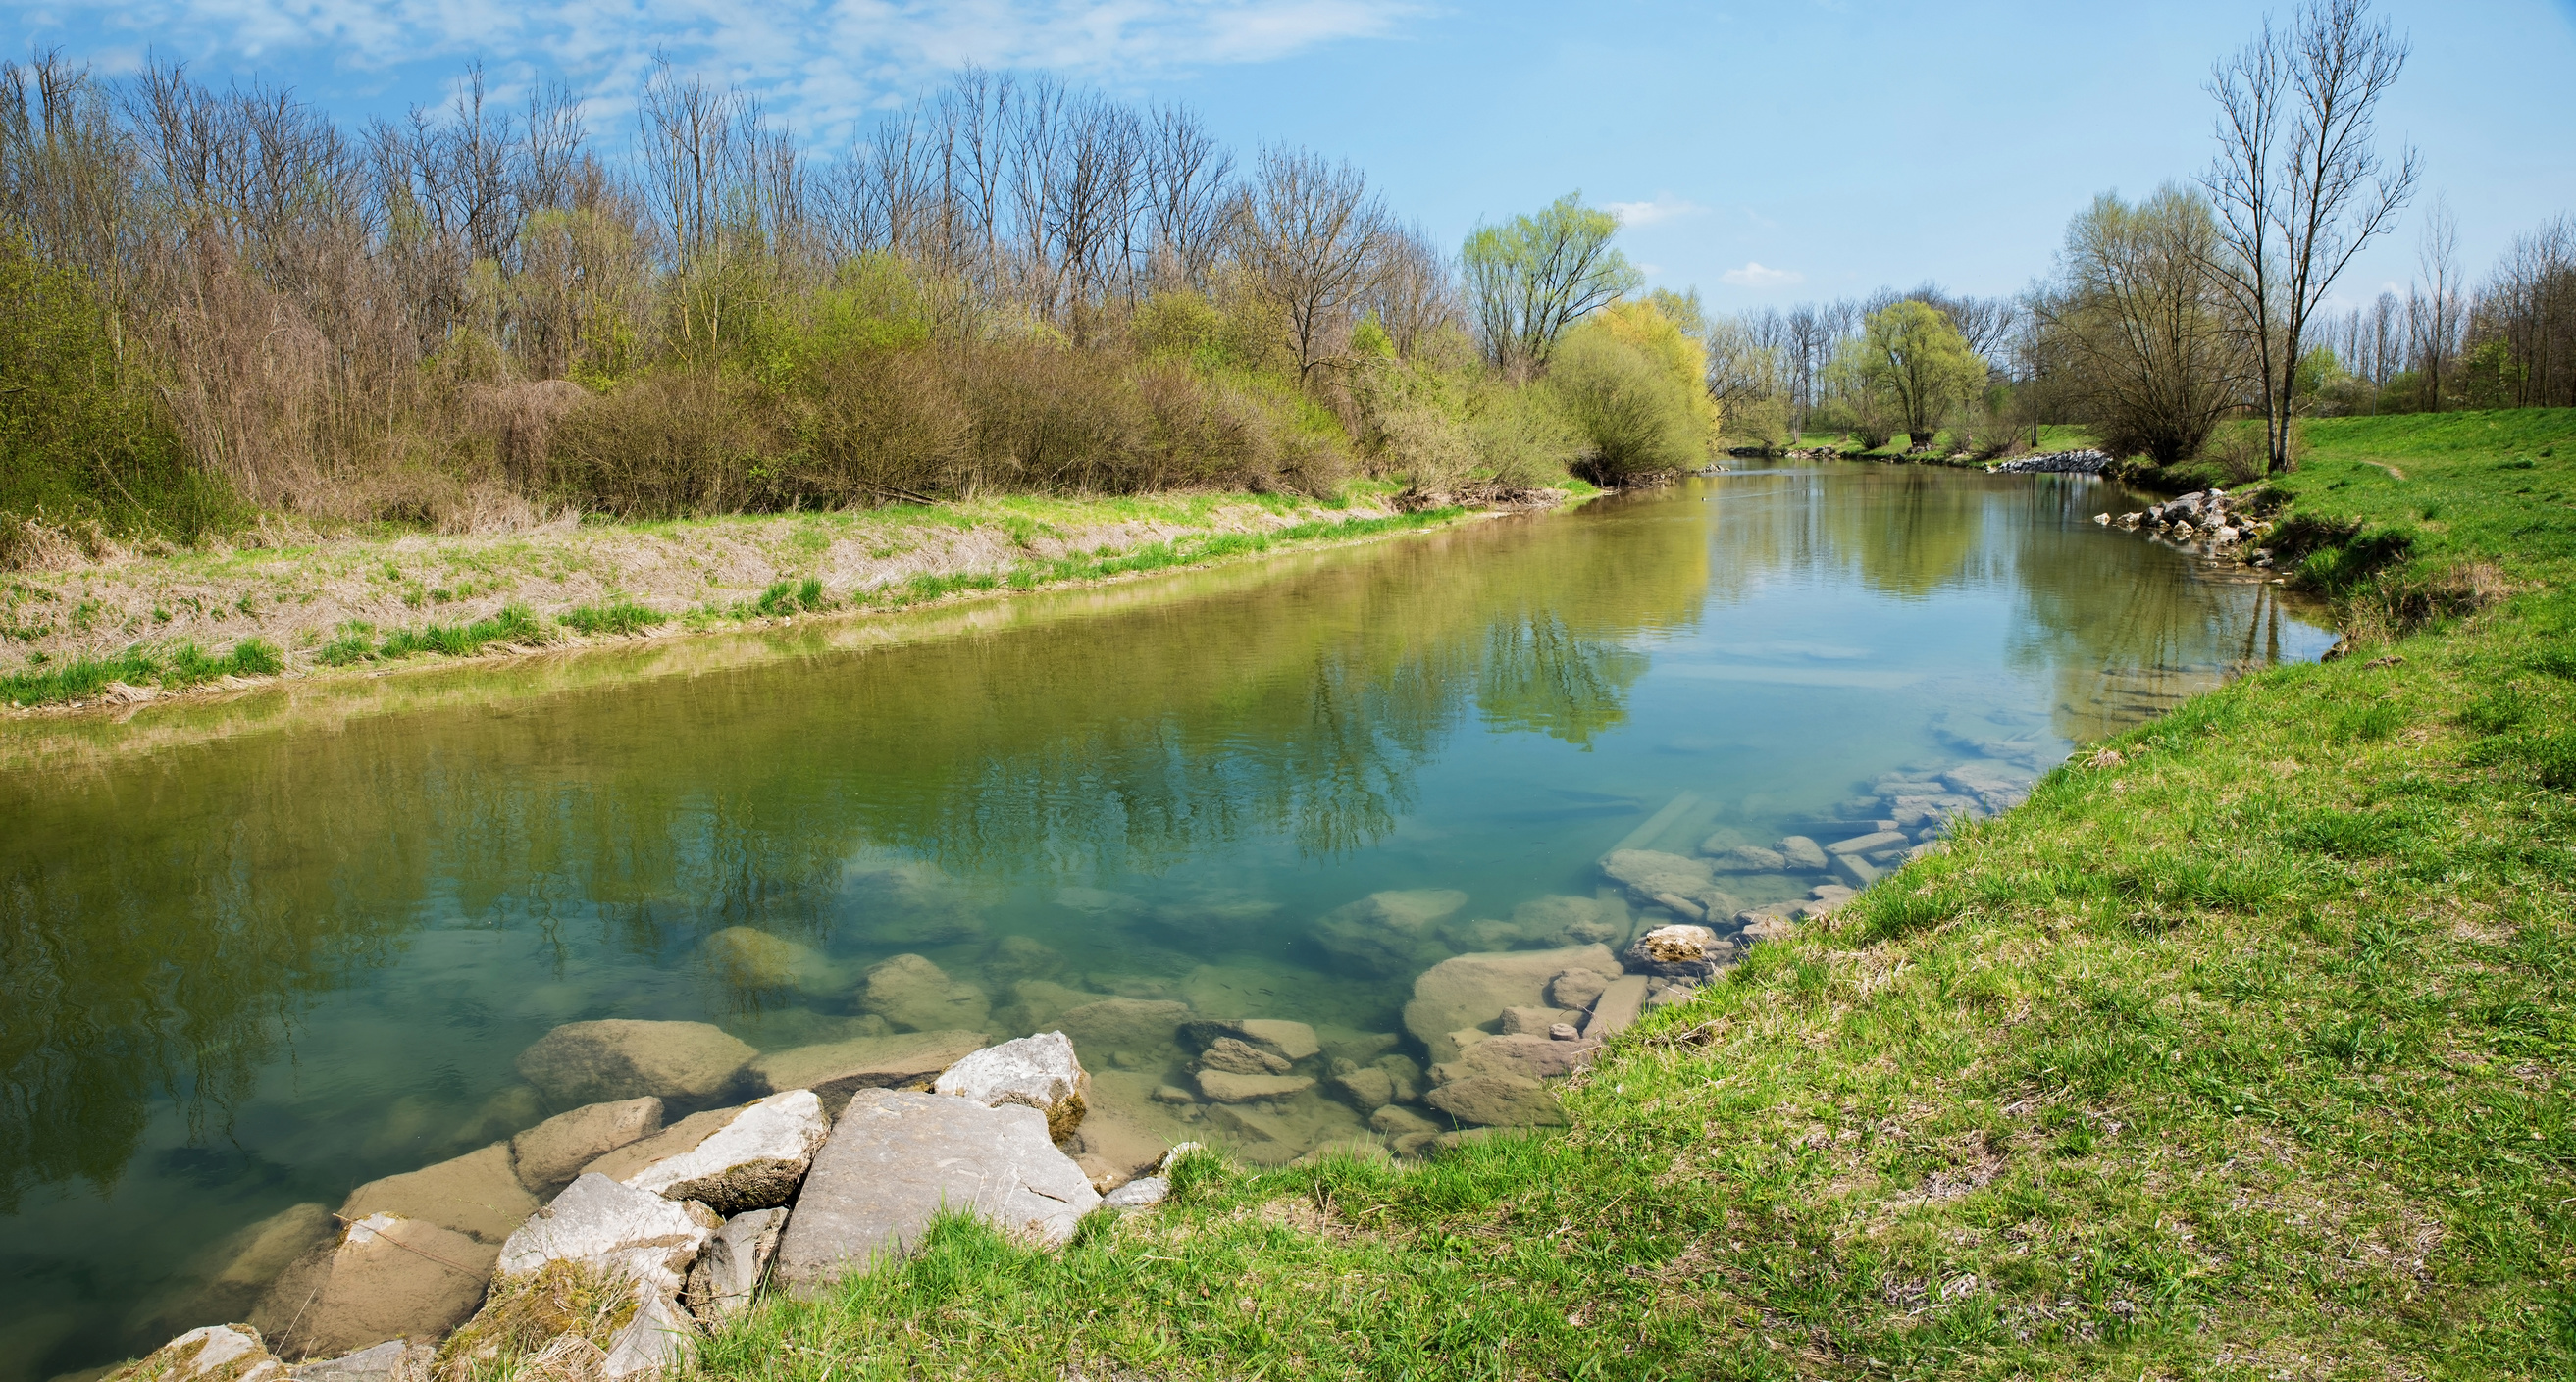 mangfall river bend, tranquil scenery at springtime